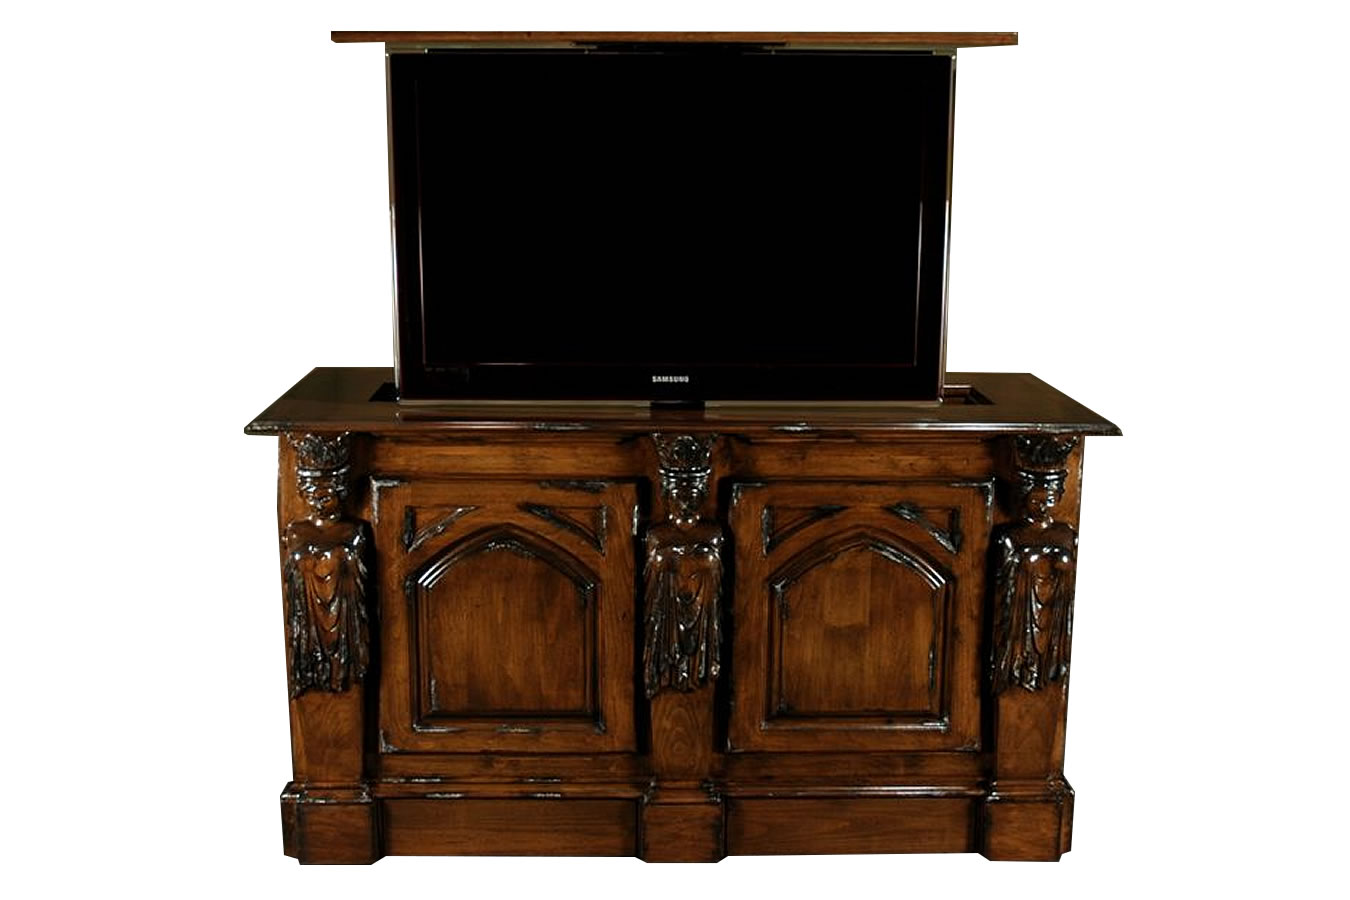 Antique Caramel princess hand carved TV lift Cabinet - orange county